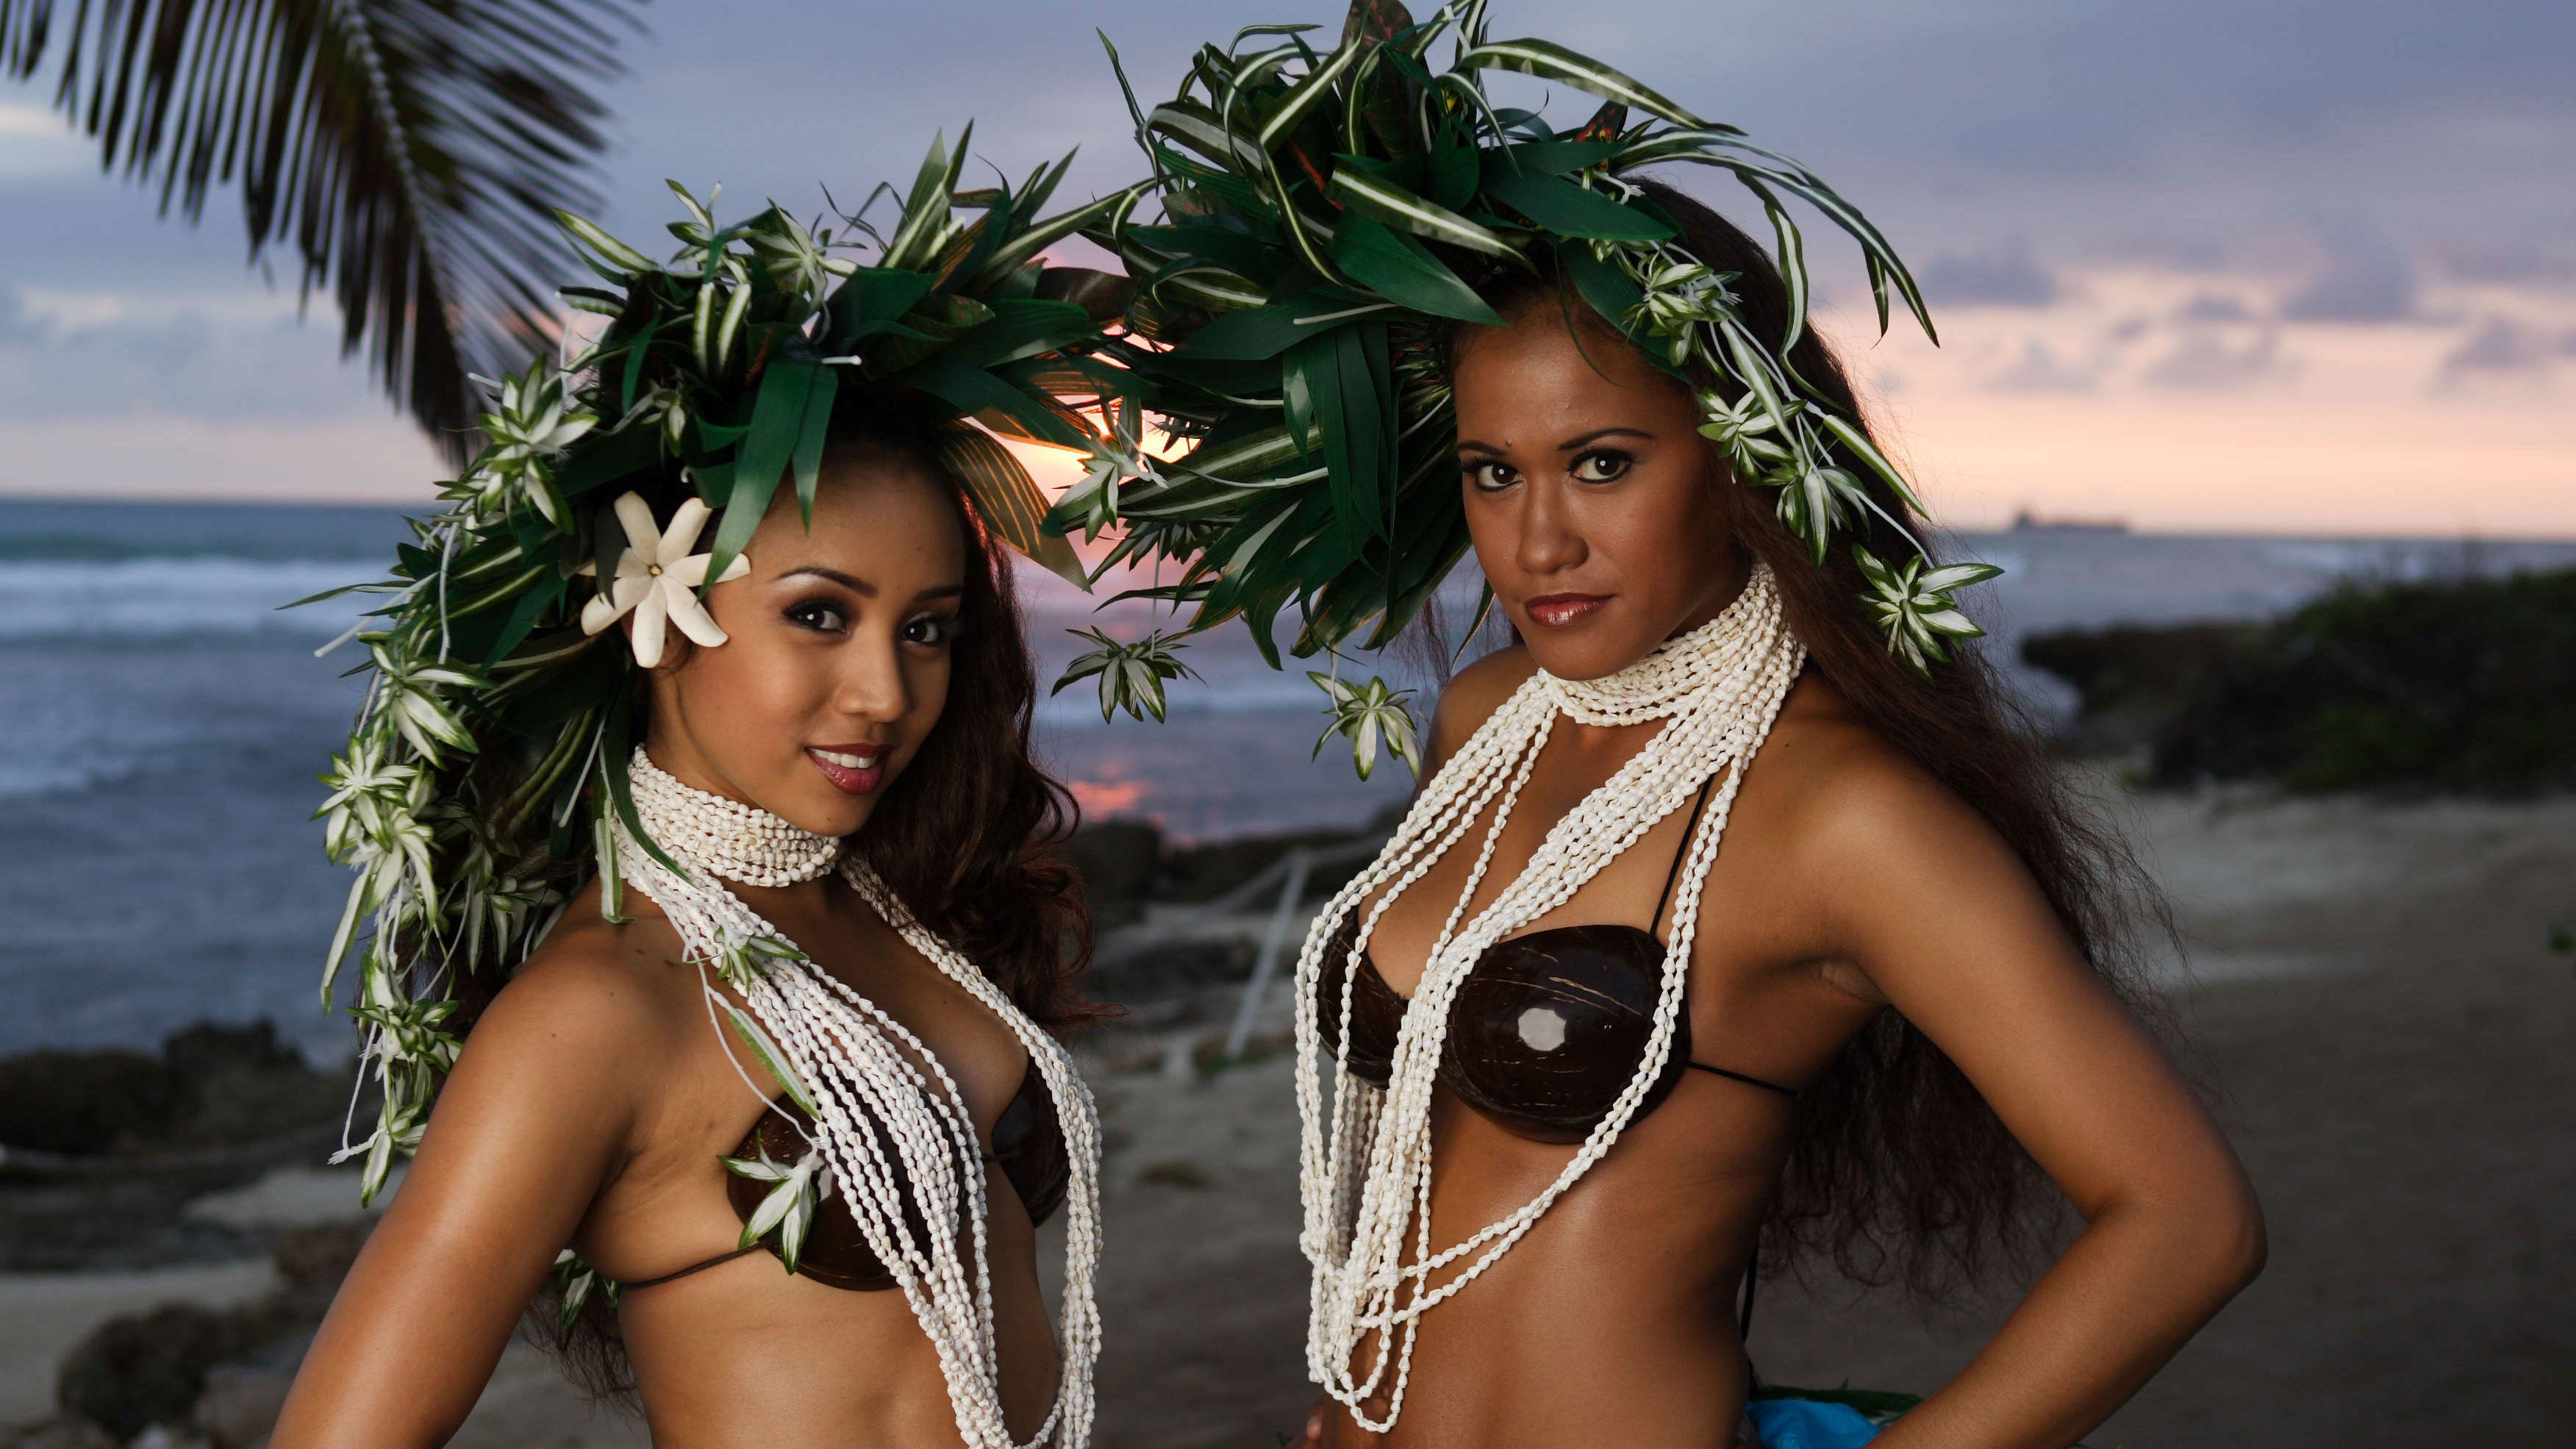 Luau performers on beach with head dresses